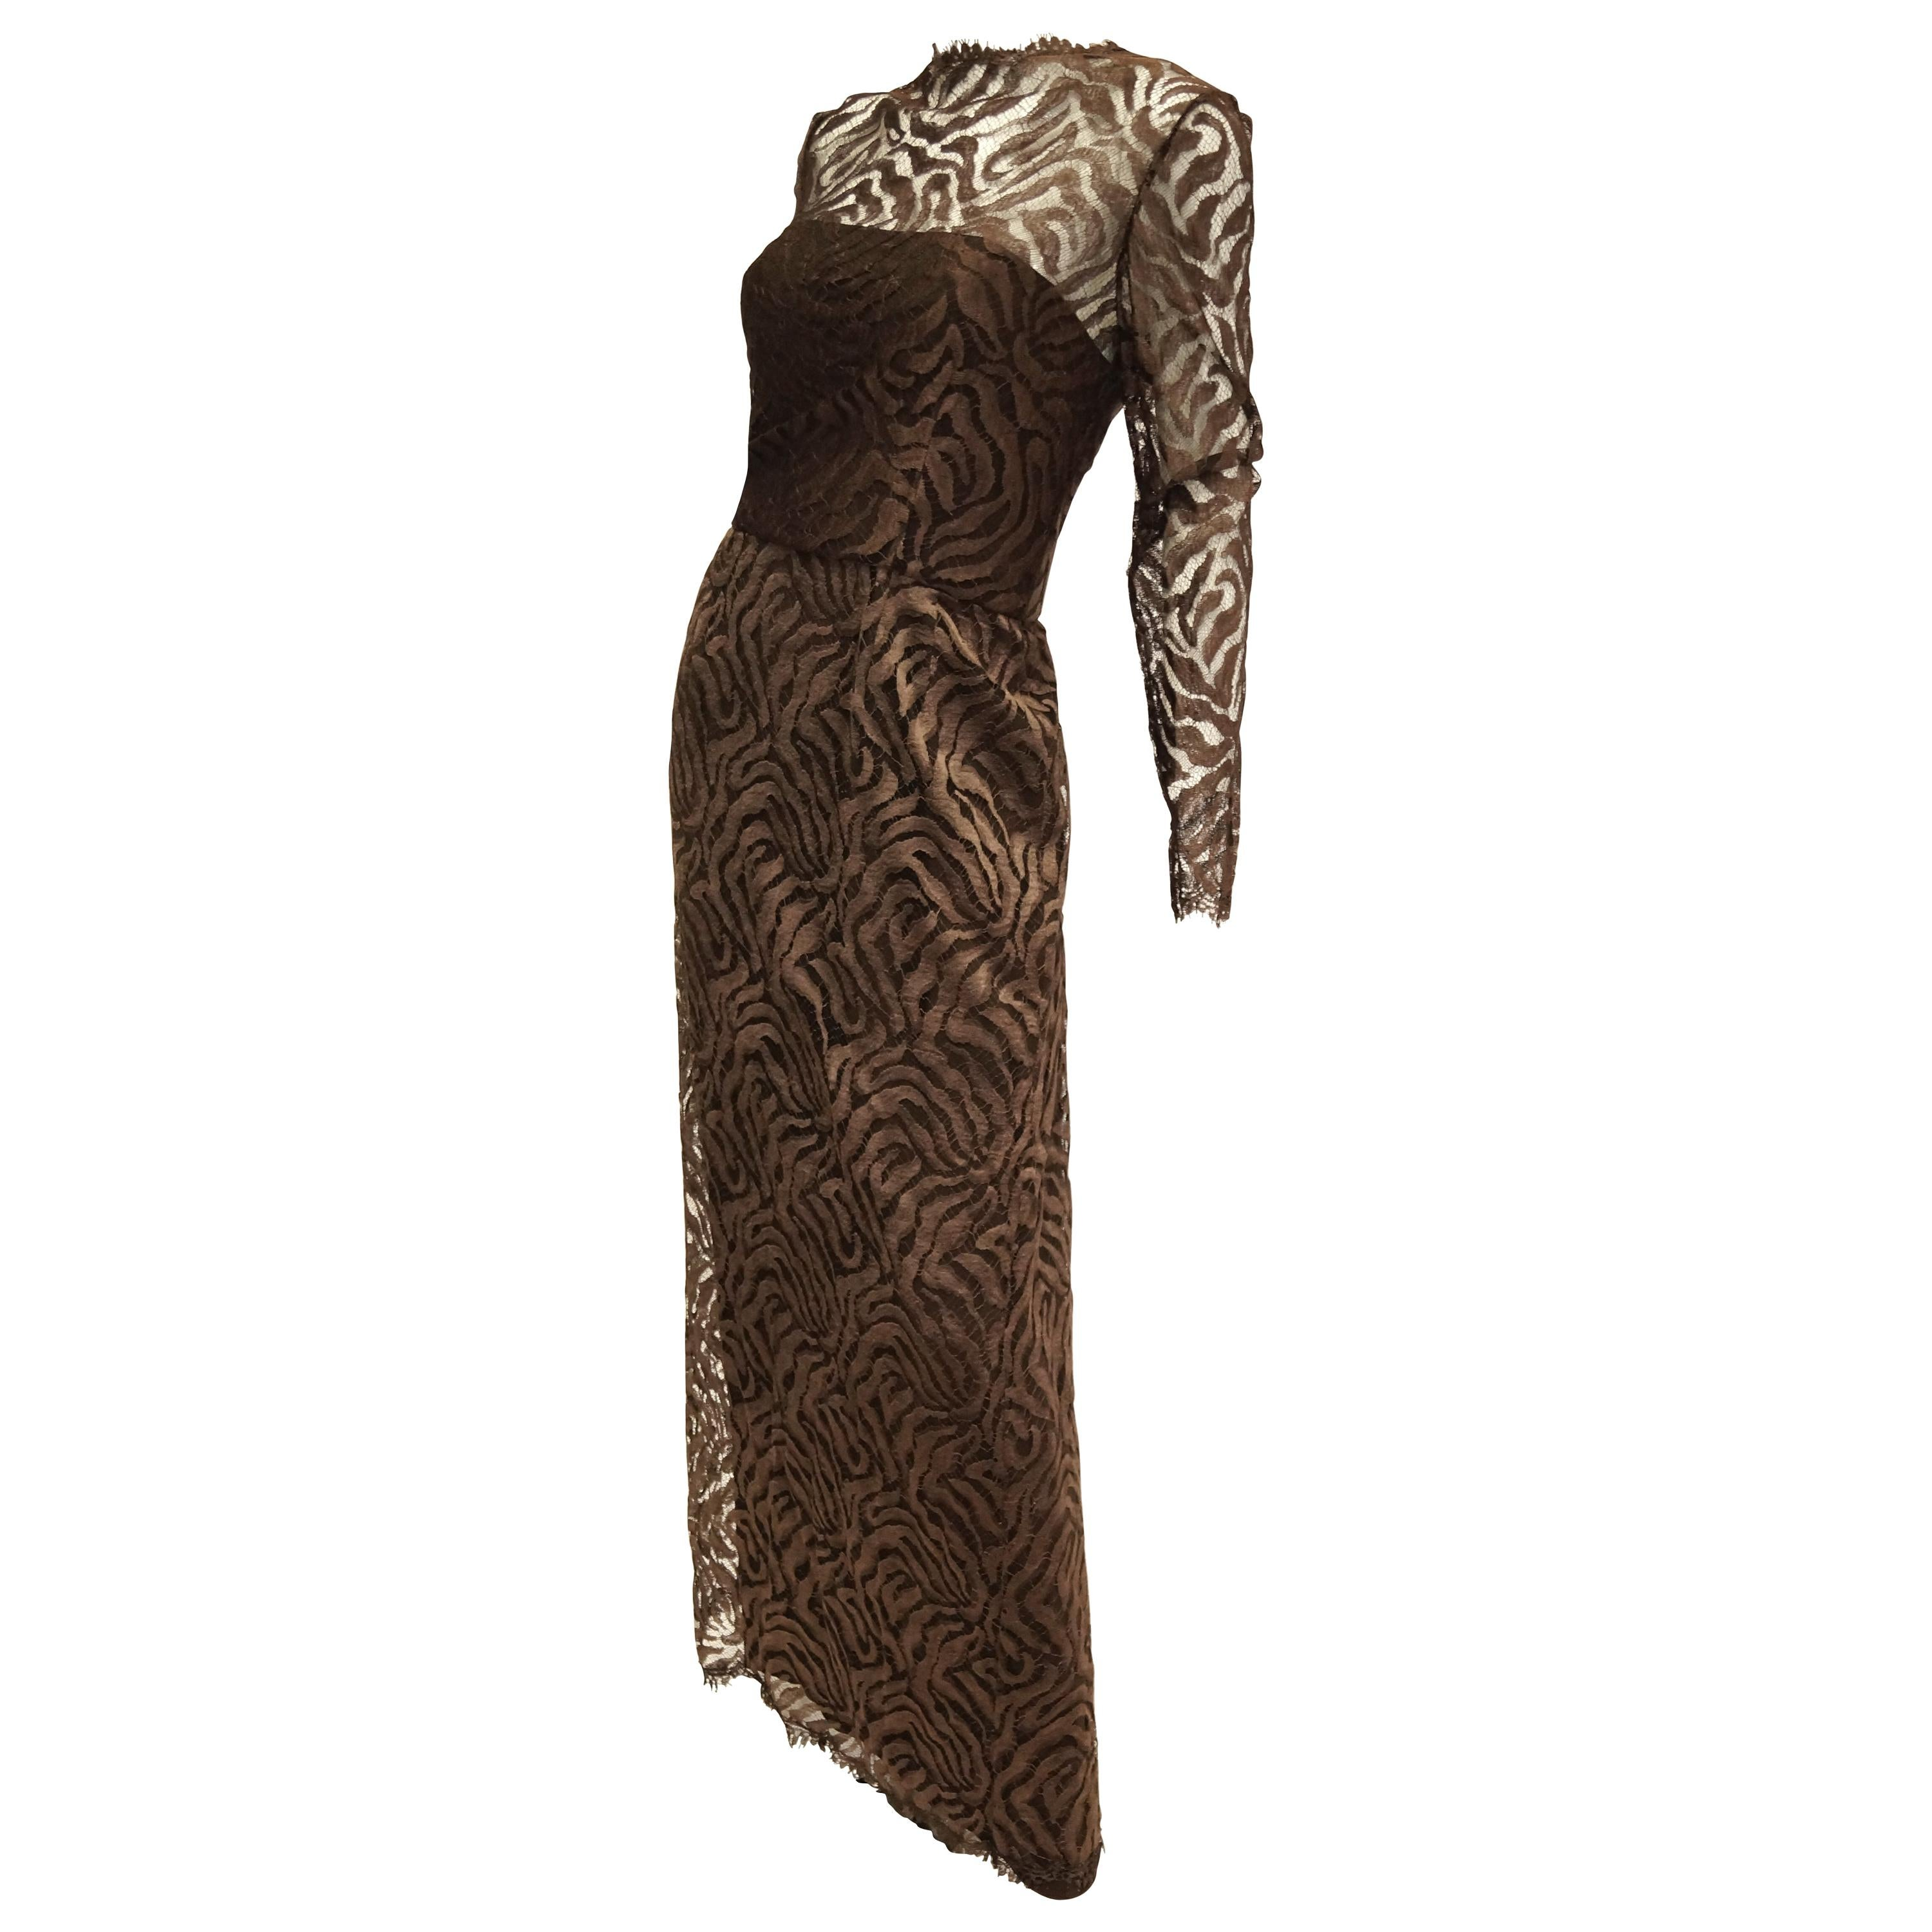 1980s Stanley Platos Martin Ross Floor Length Umber Lace Evening Dress